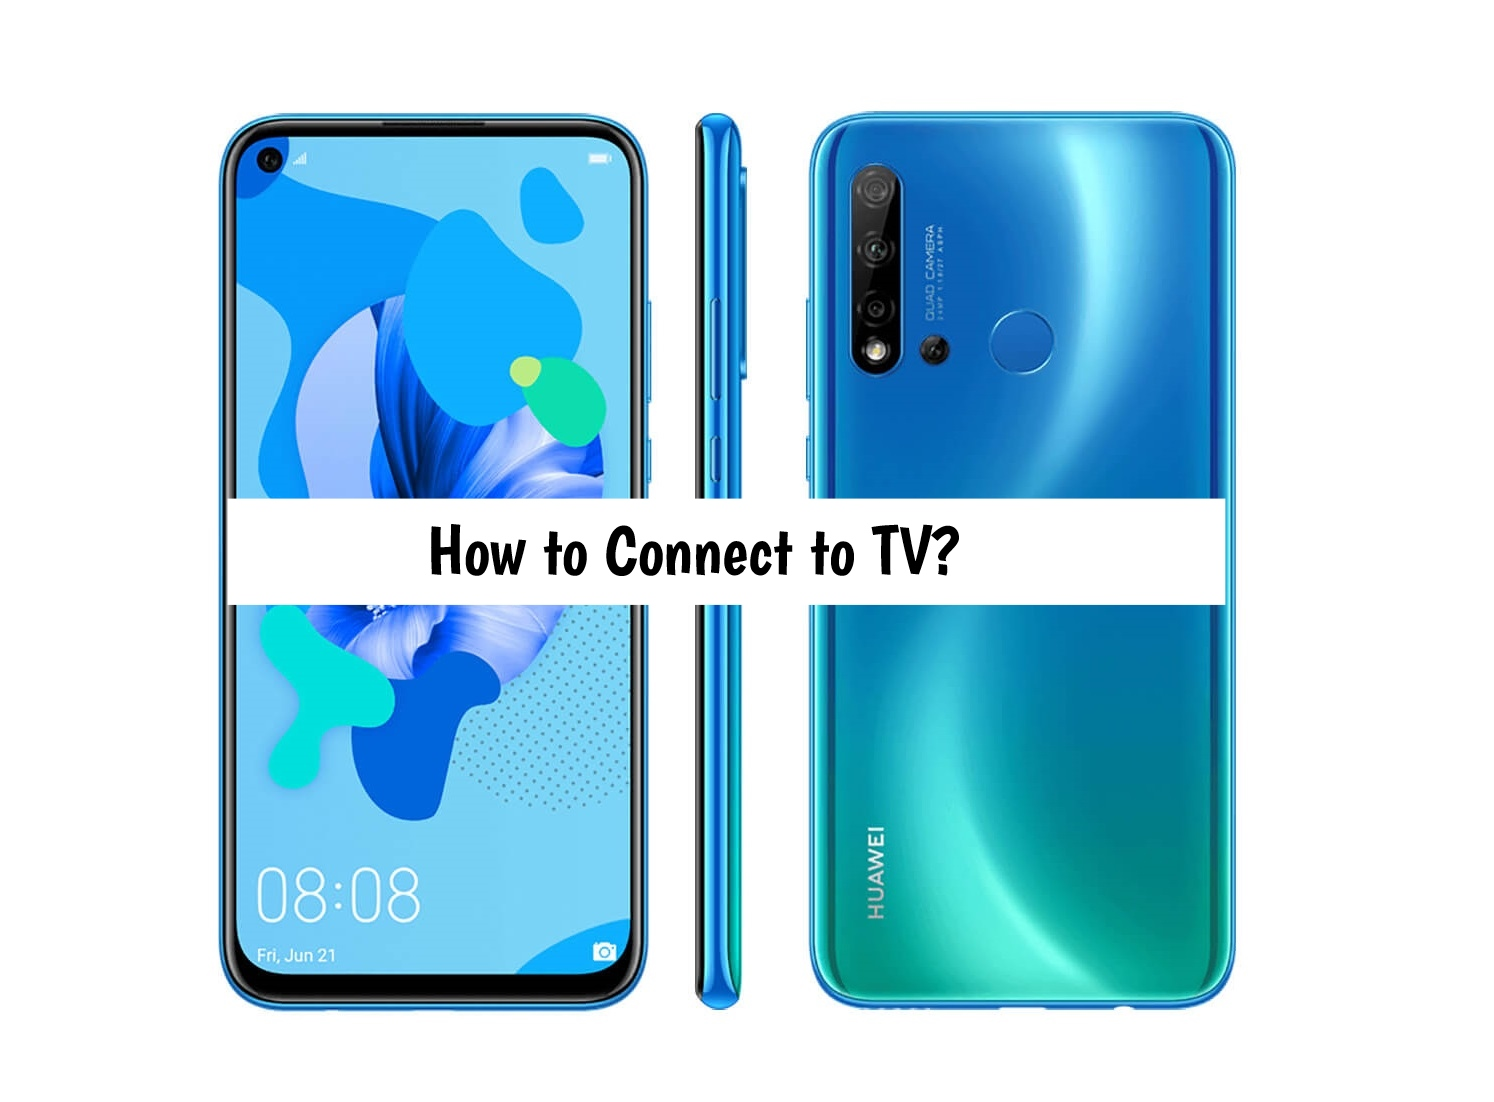 How to connect Huawei Nova 5i to TV